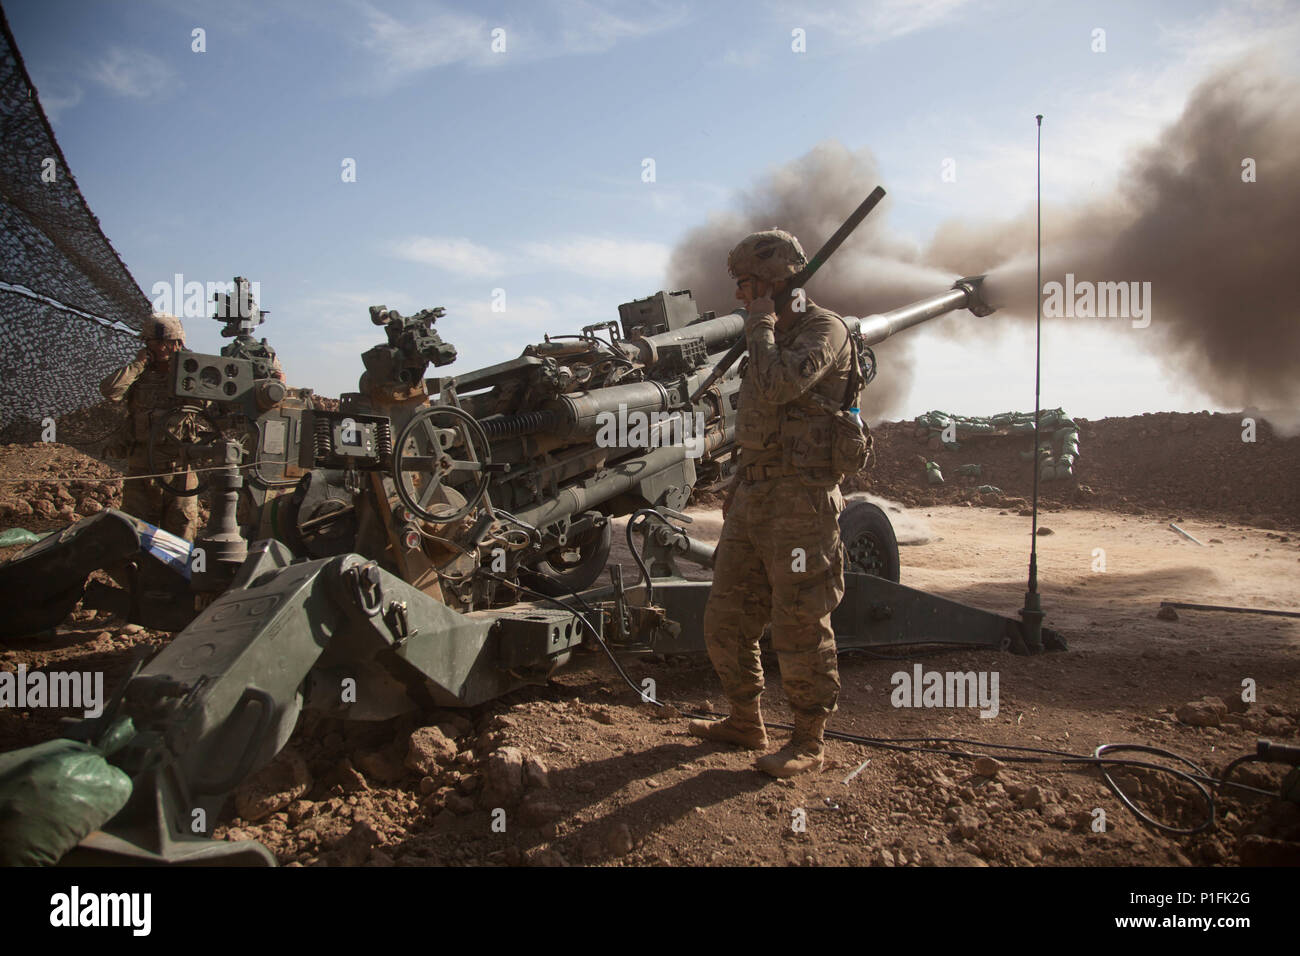 U.S Army Soldiers, Battery C, 1st Battalion, 320th Field Artillery Regiment, 101st Airborne Division, fire a M777 towed 155 mm howitzer at Platoon Assembly Area 14, Iraq, in support of Combined Joint Task Force-Operation Inherent Resolve (CJTF-OIR), Oct. 21, 2016.  CJTF-OIR is a multinational effort to weaken and destroy Islamic State in Iraq and the Levant operations in the Middle East region and around the world. (U.S. Army photo by Sgt. Joshua Wooten) - Stock Image